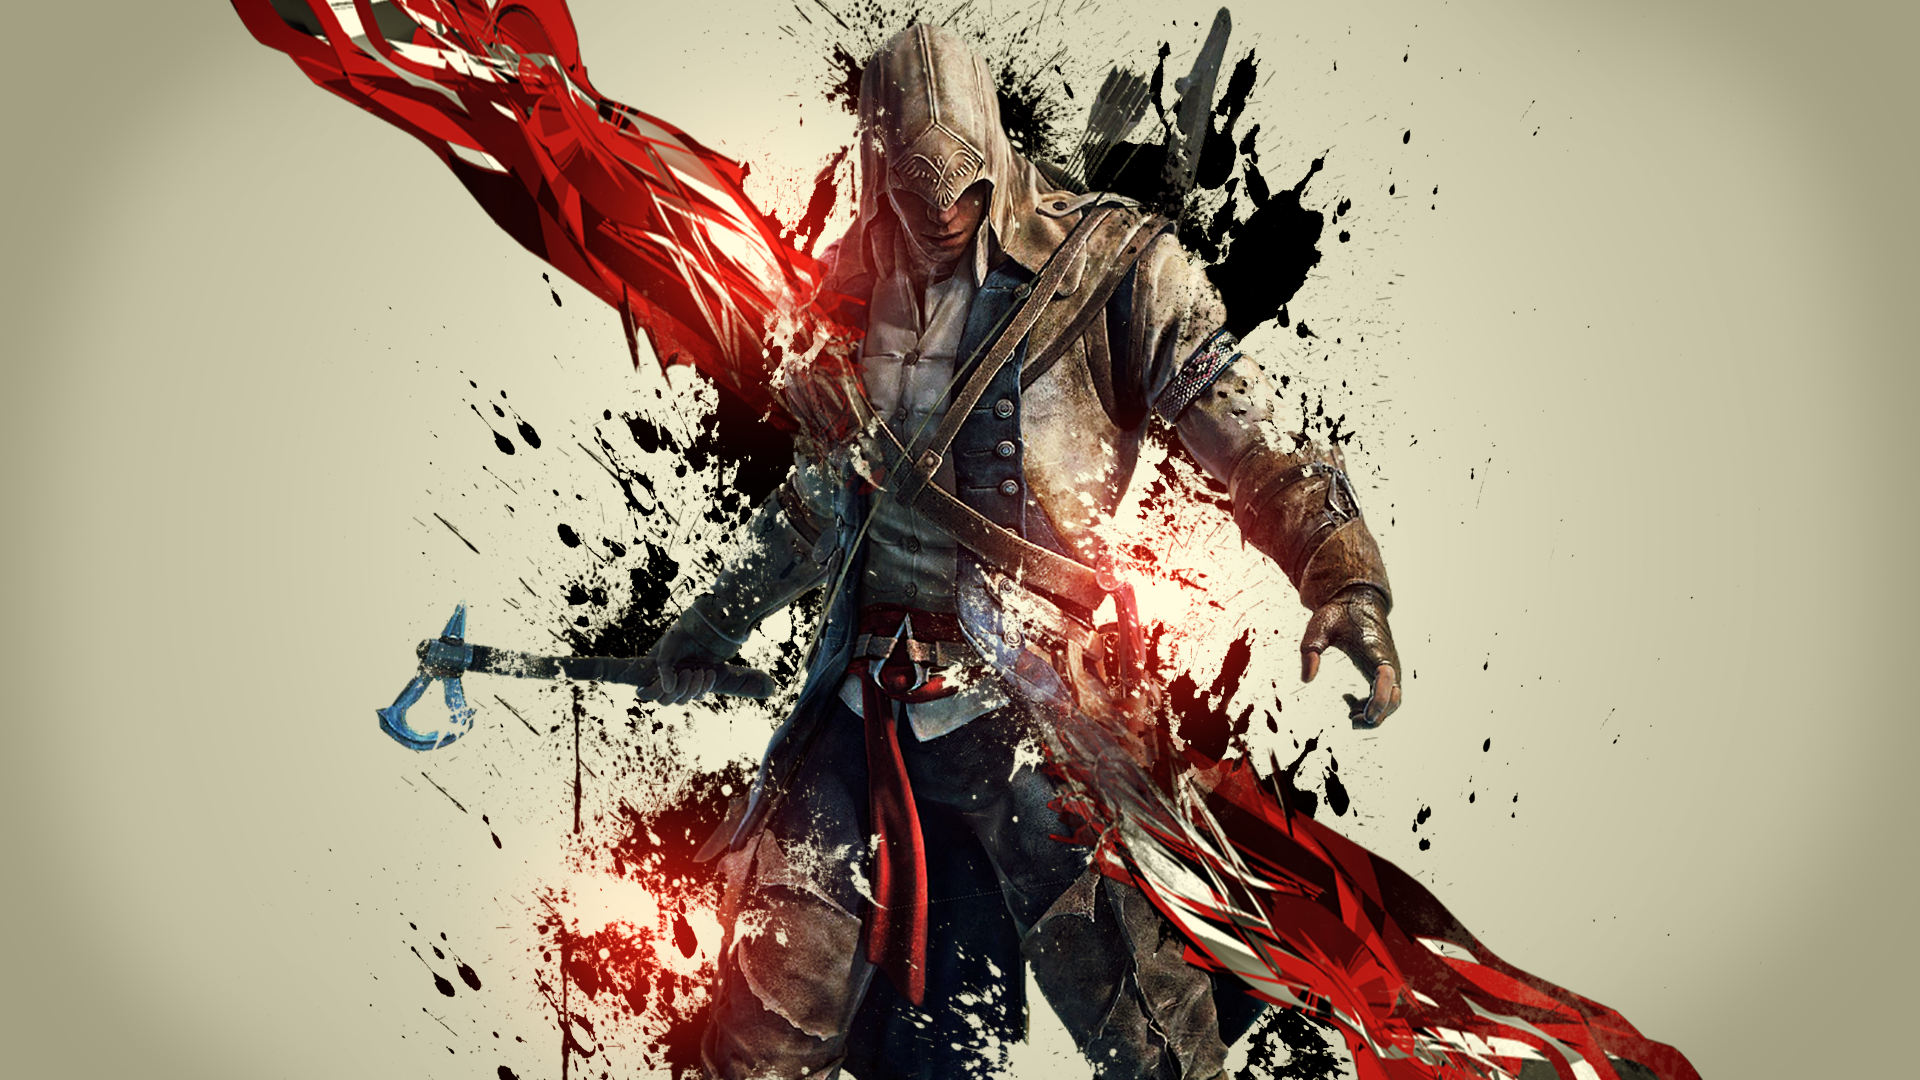 919 Assassin's Creed HD Wallpapers | Backgrounds - Wallpaper Abyss